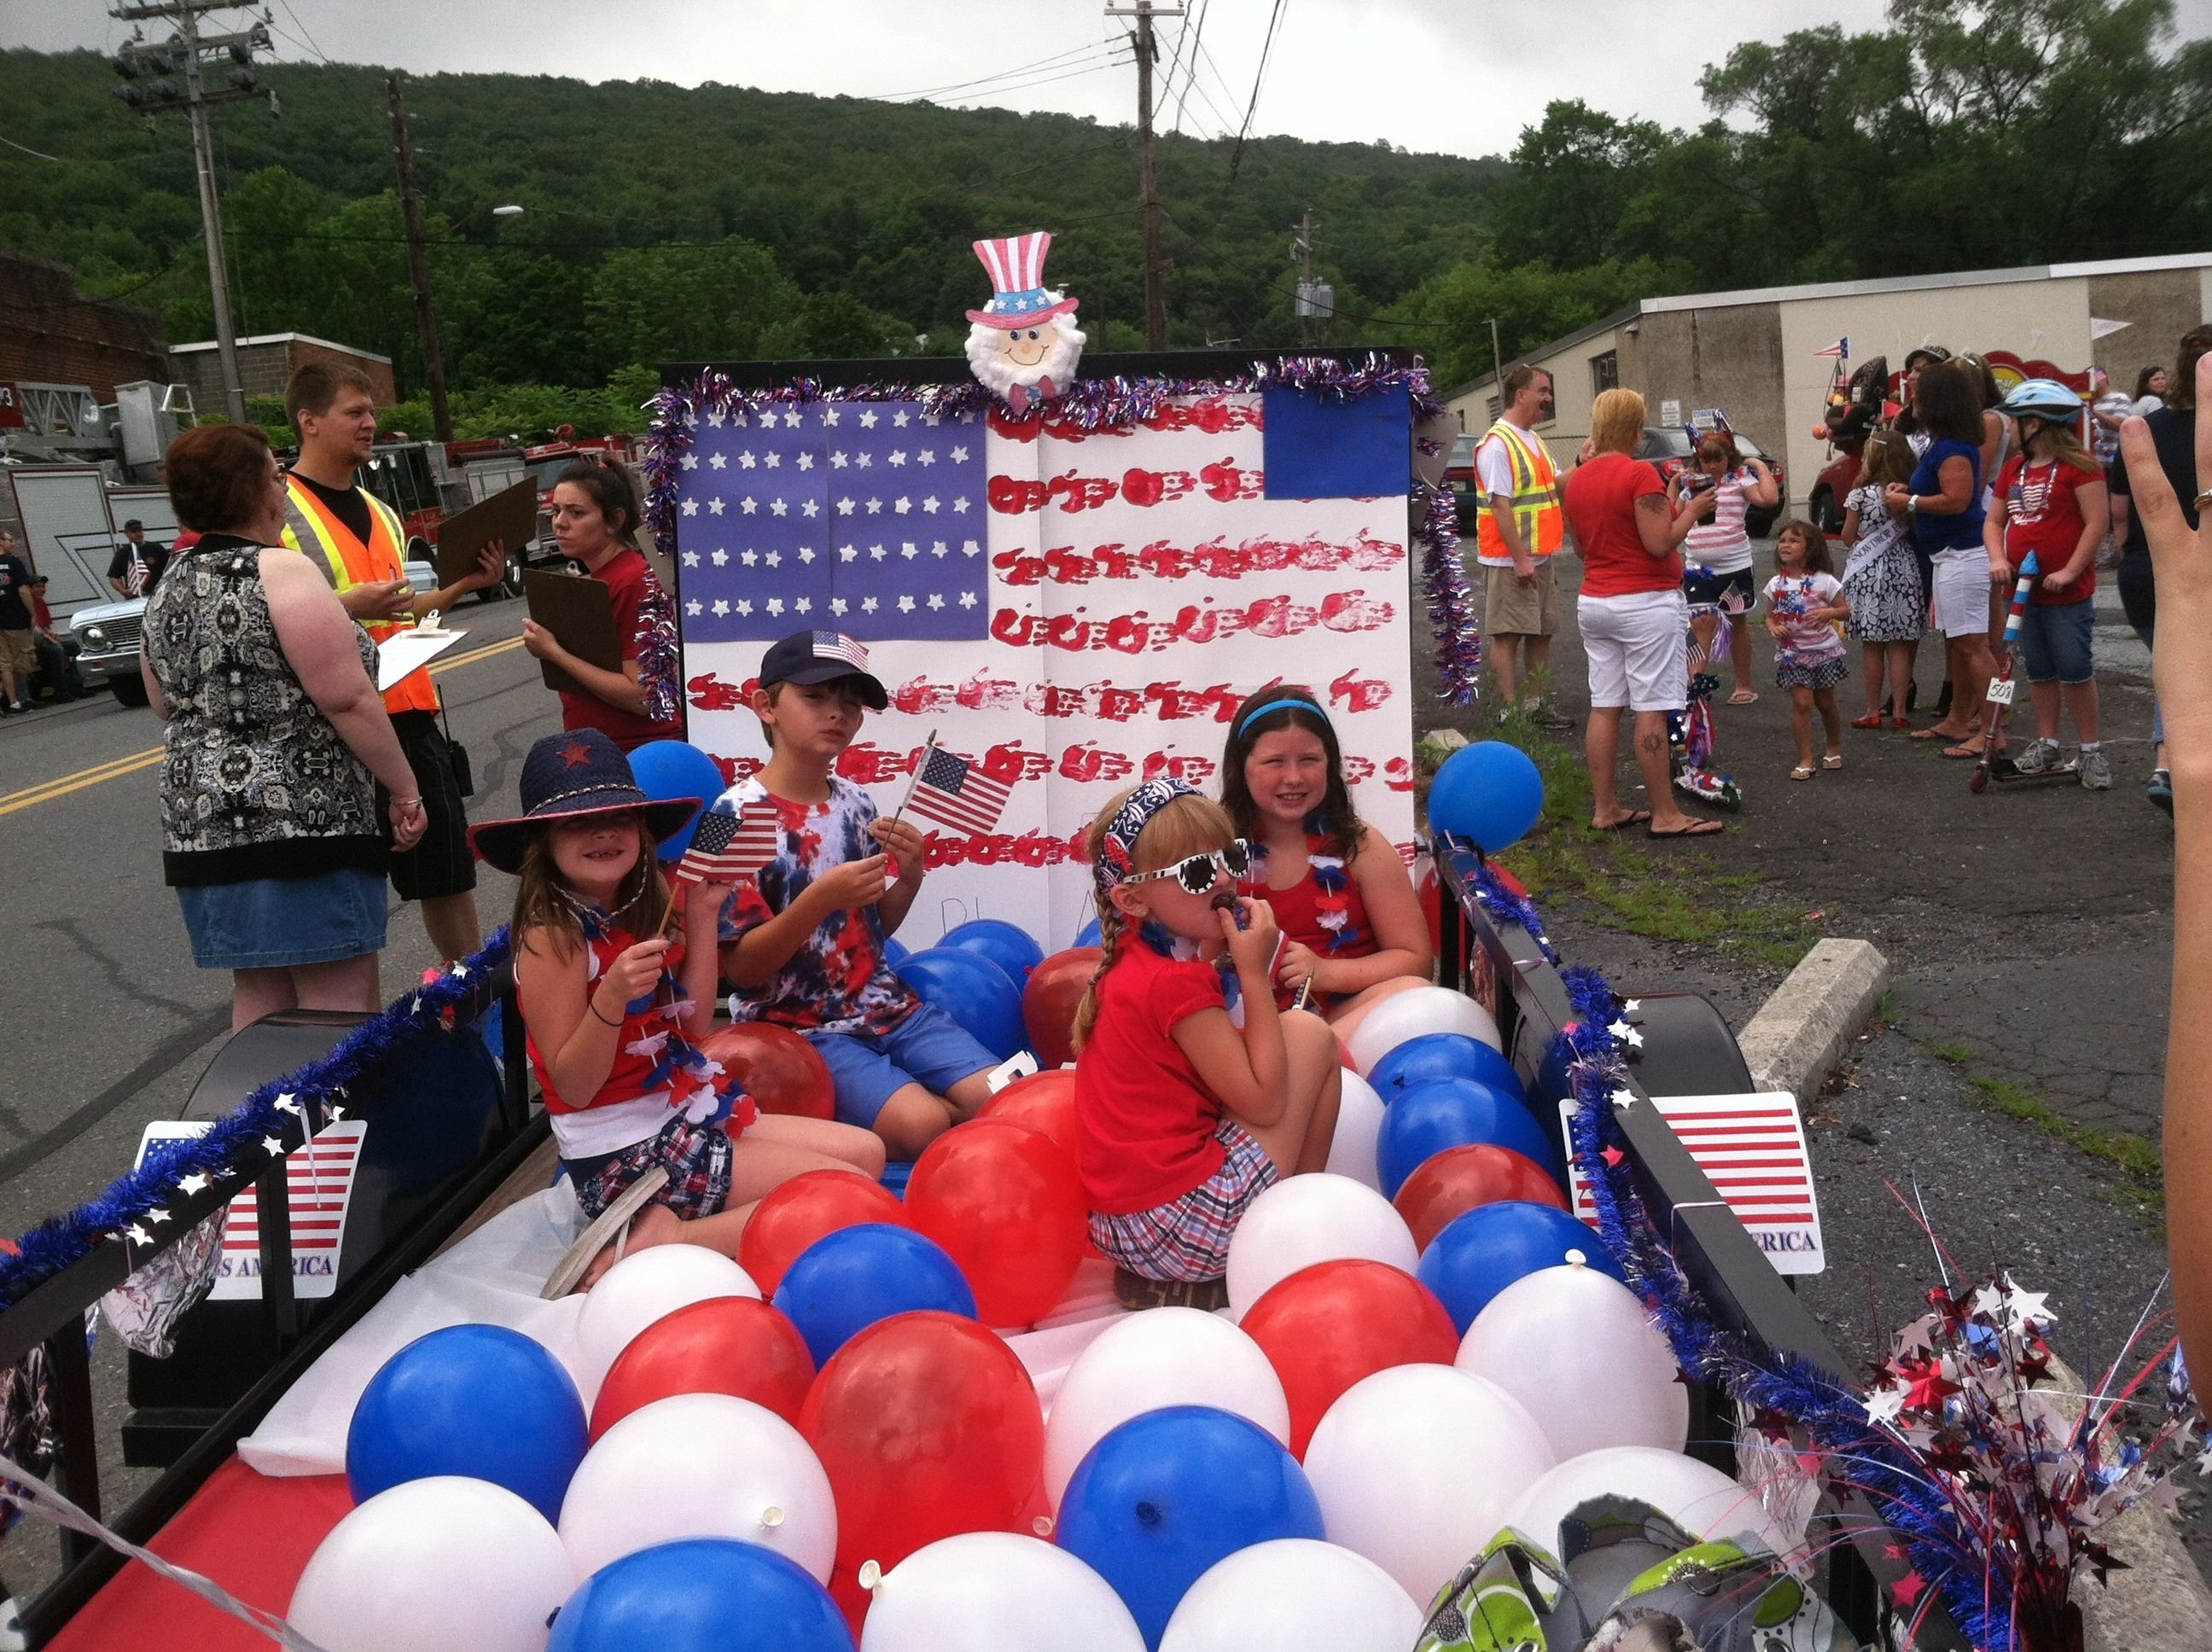 10 Famous 4Th Of July Parade Ideas 2013 4th of july parade float 2nd place win summer patriotic 2020